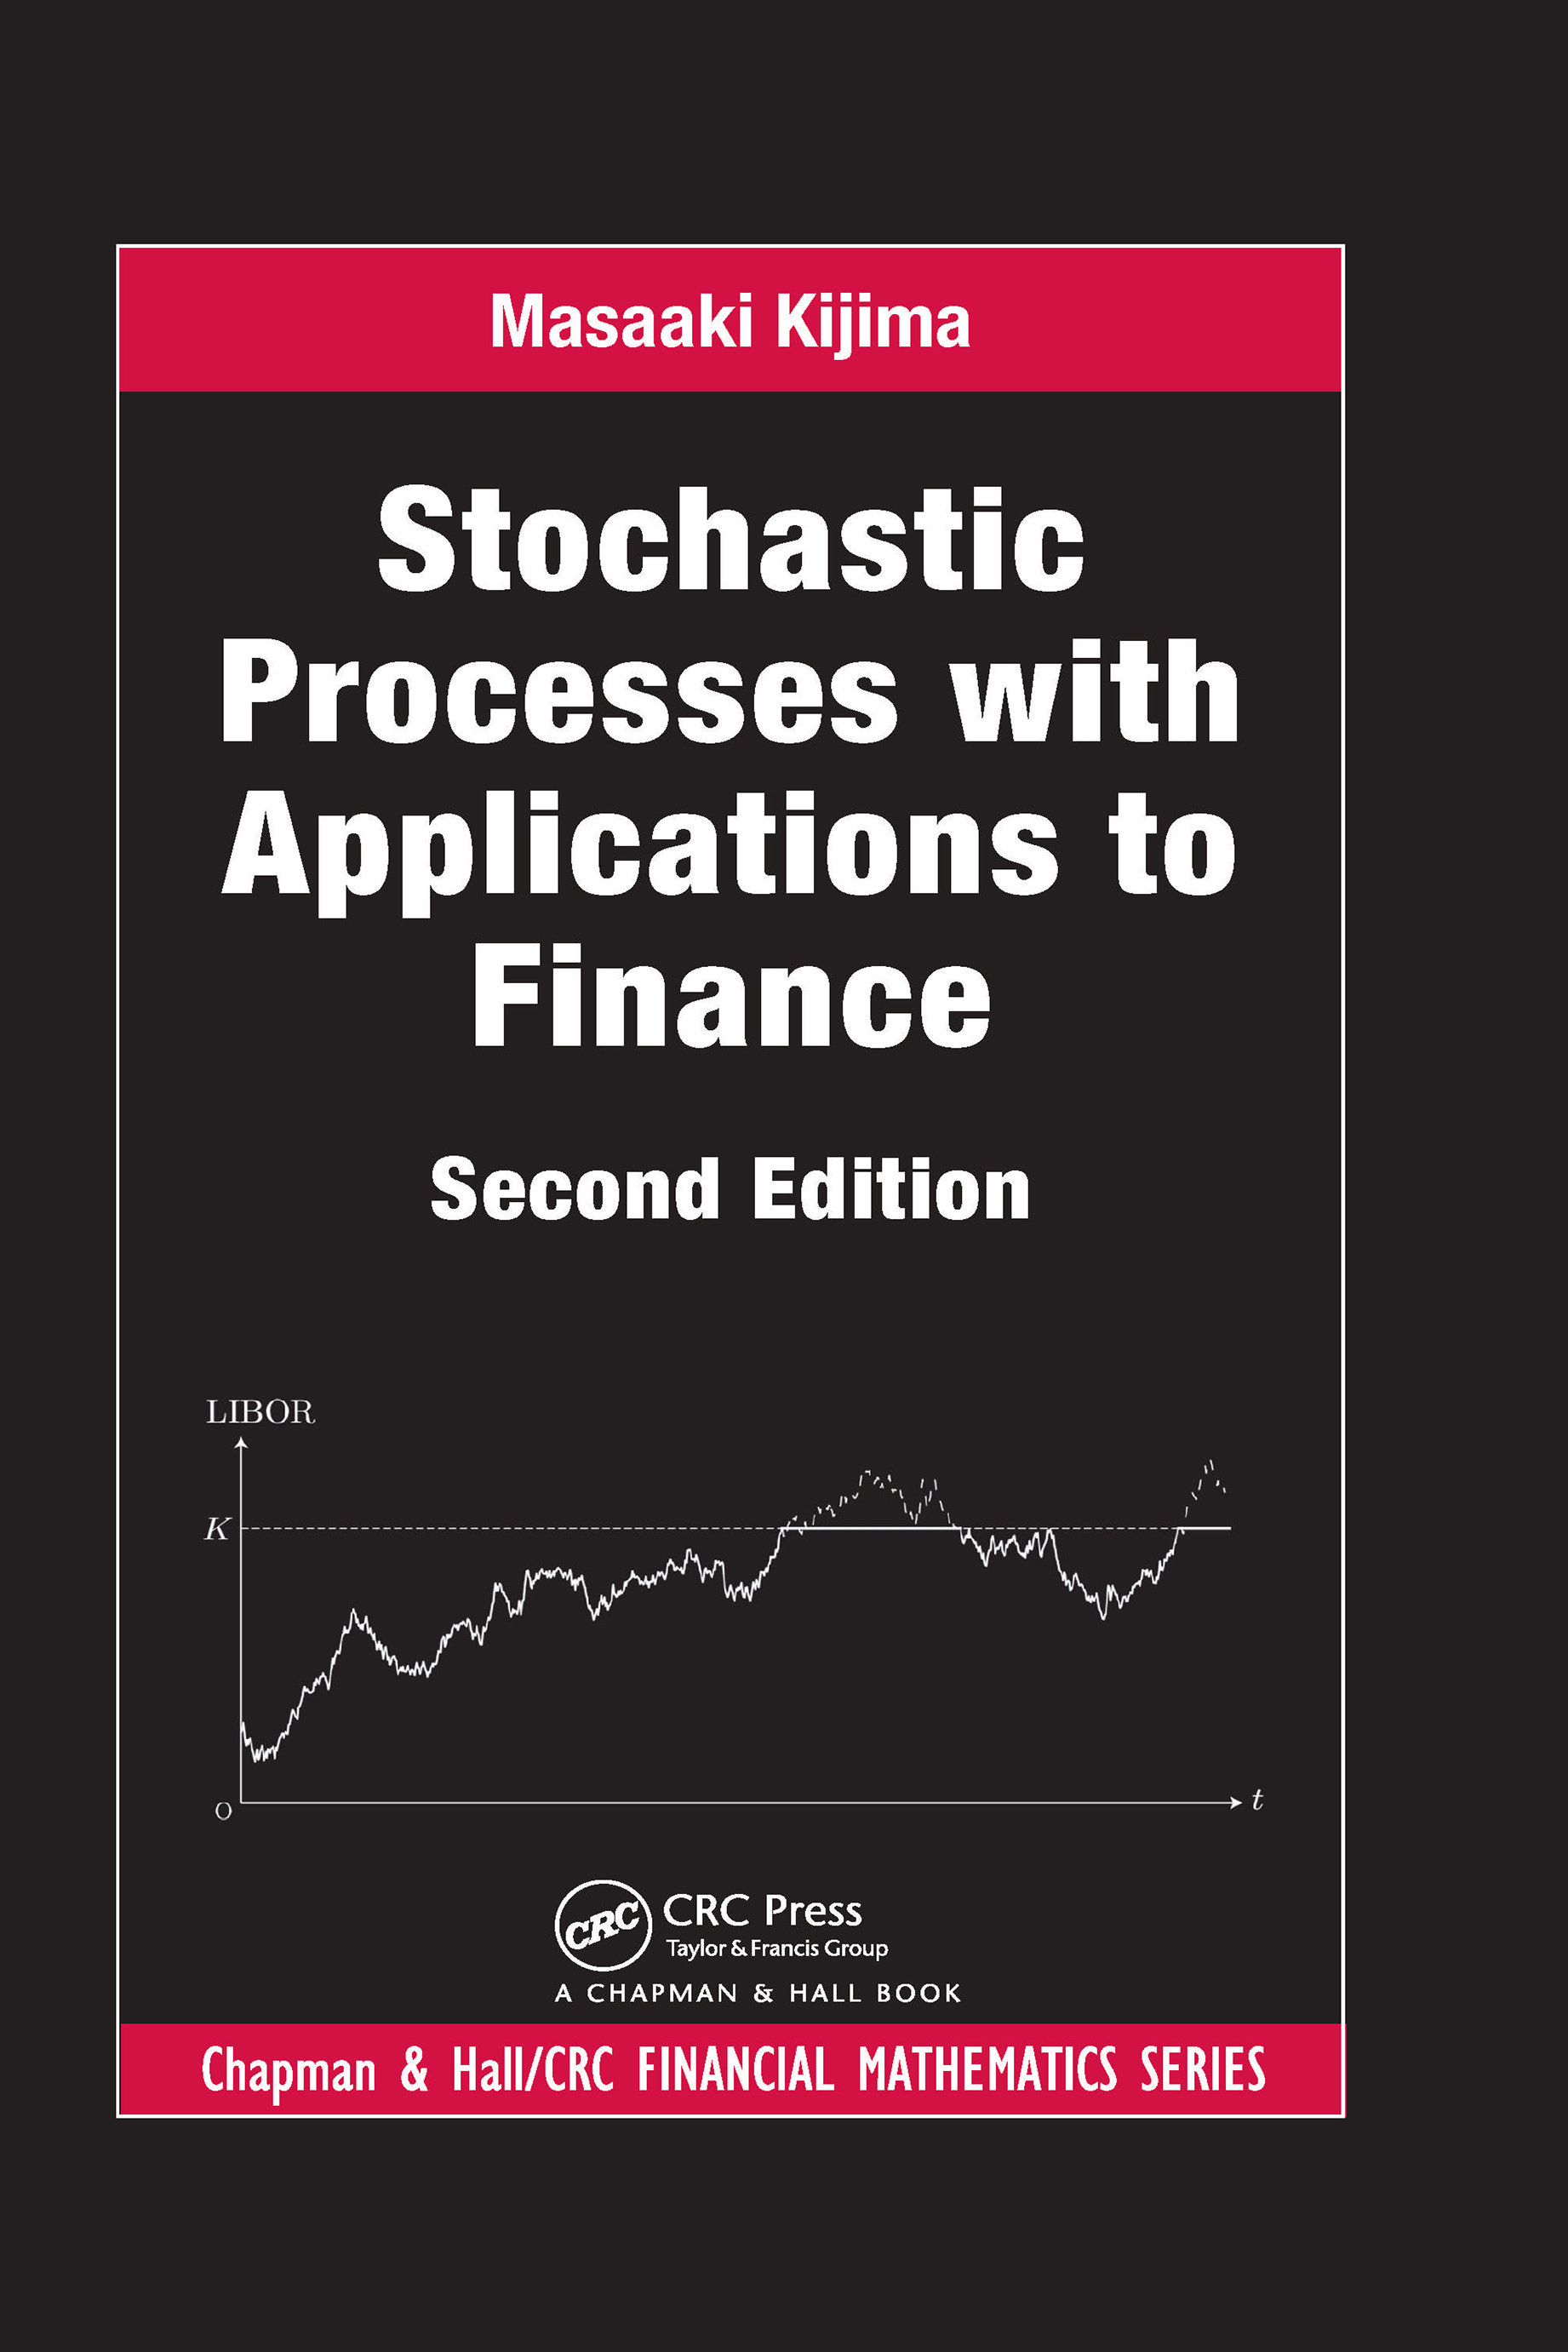 Stochastic Processes with Applications to Finance, Second Edition book cover